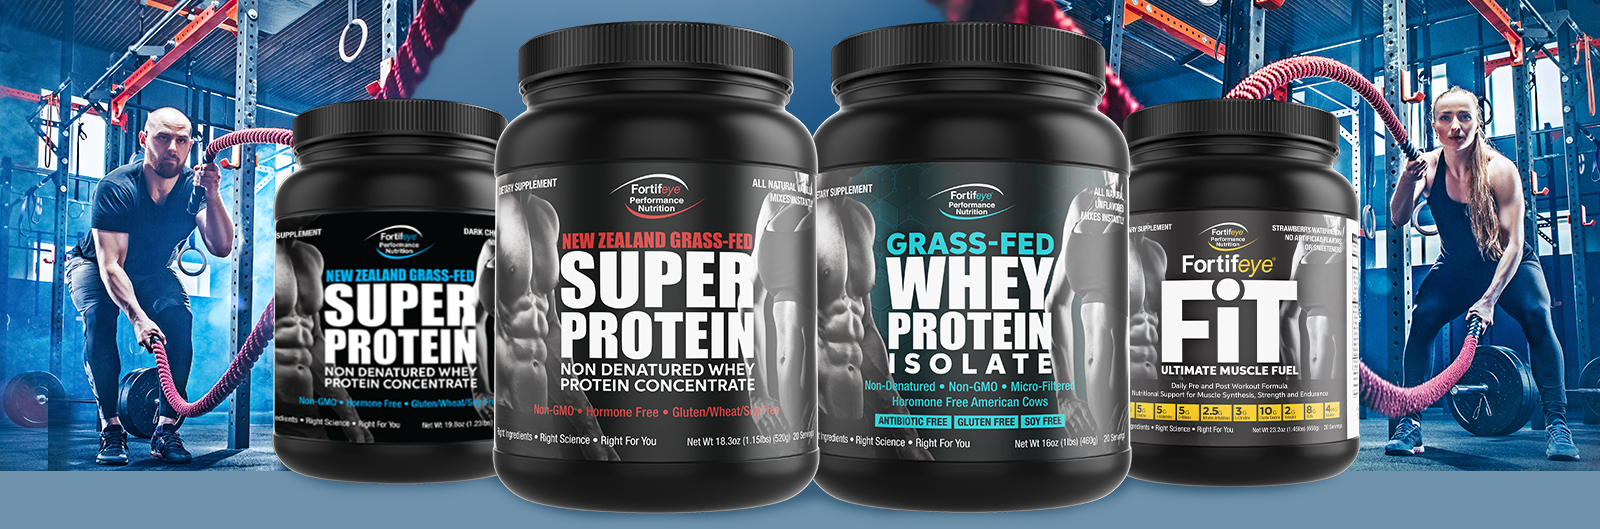 Grass fed cows Super  whey protein